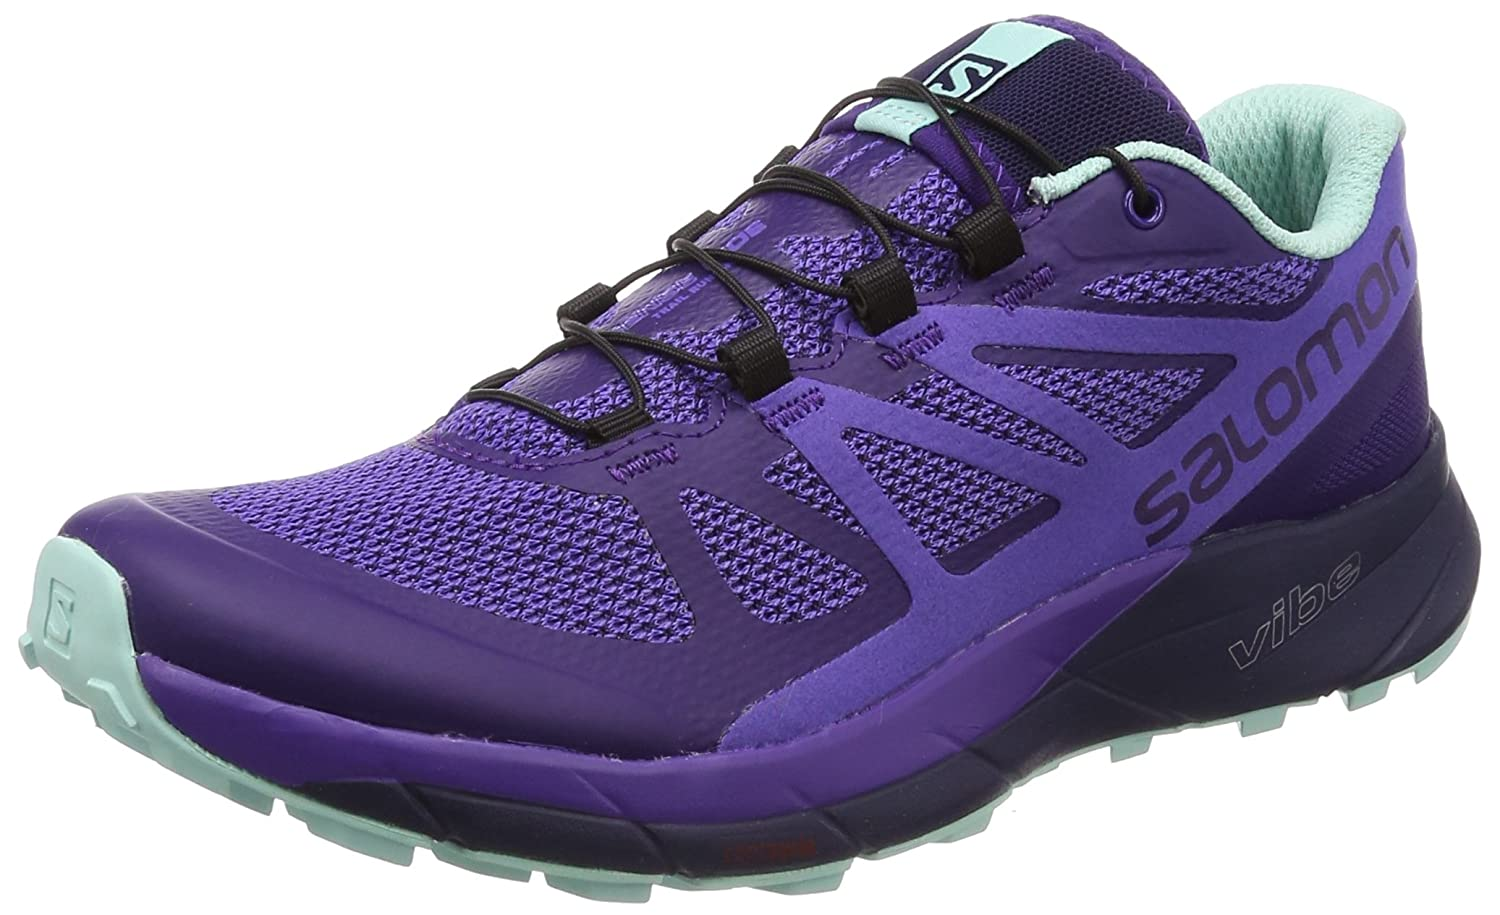 Salomon Sense Ride Running Shoe - Women's B078Z3QKK5 10 B(M) US|Parachute Purple, Purple Opulence, Beach Glass